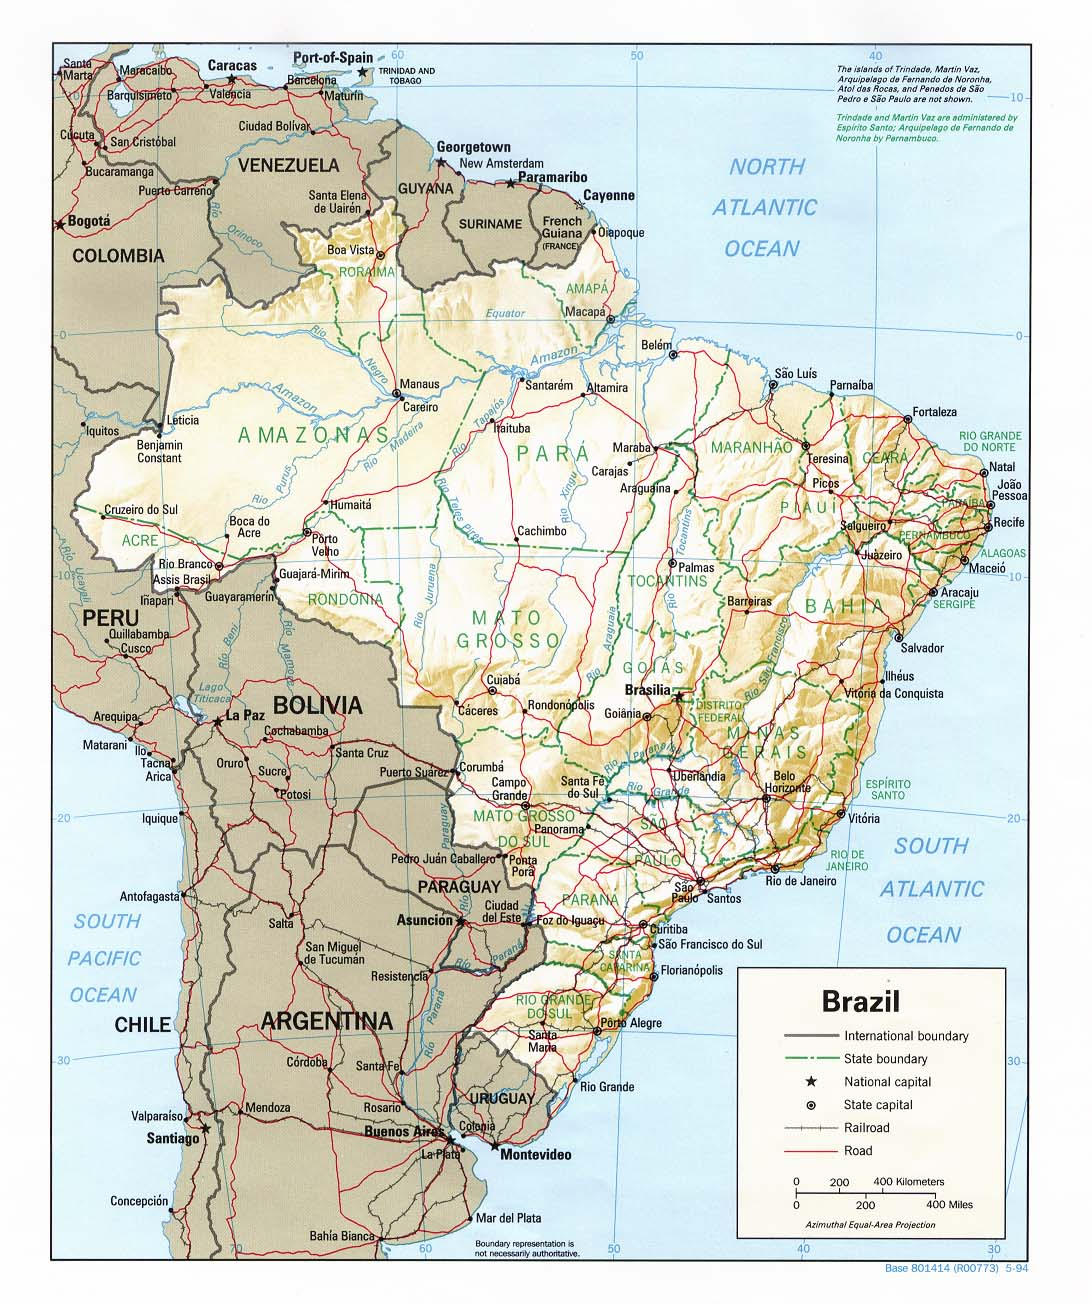 Map Of Brazil, Brazil [Shaded Relief Map] 1994 (264K)